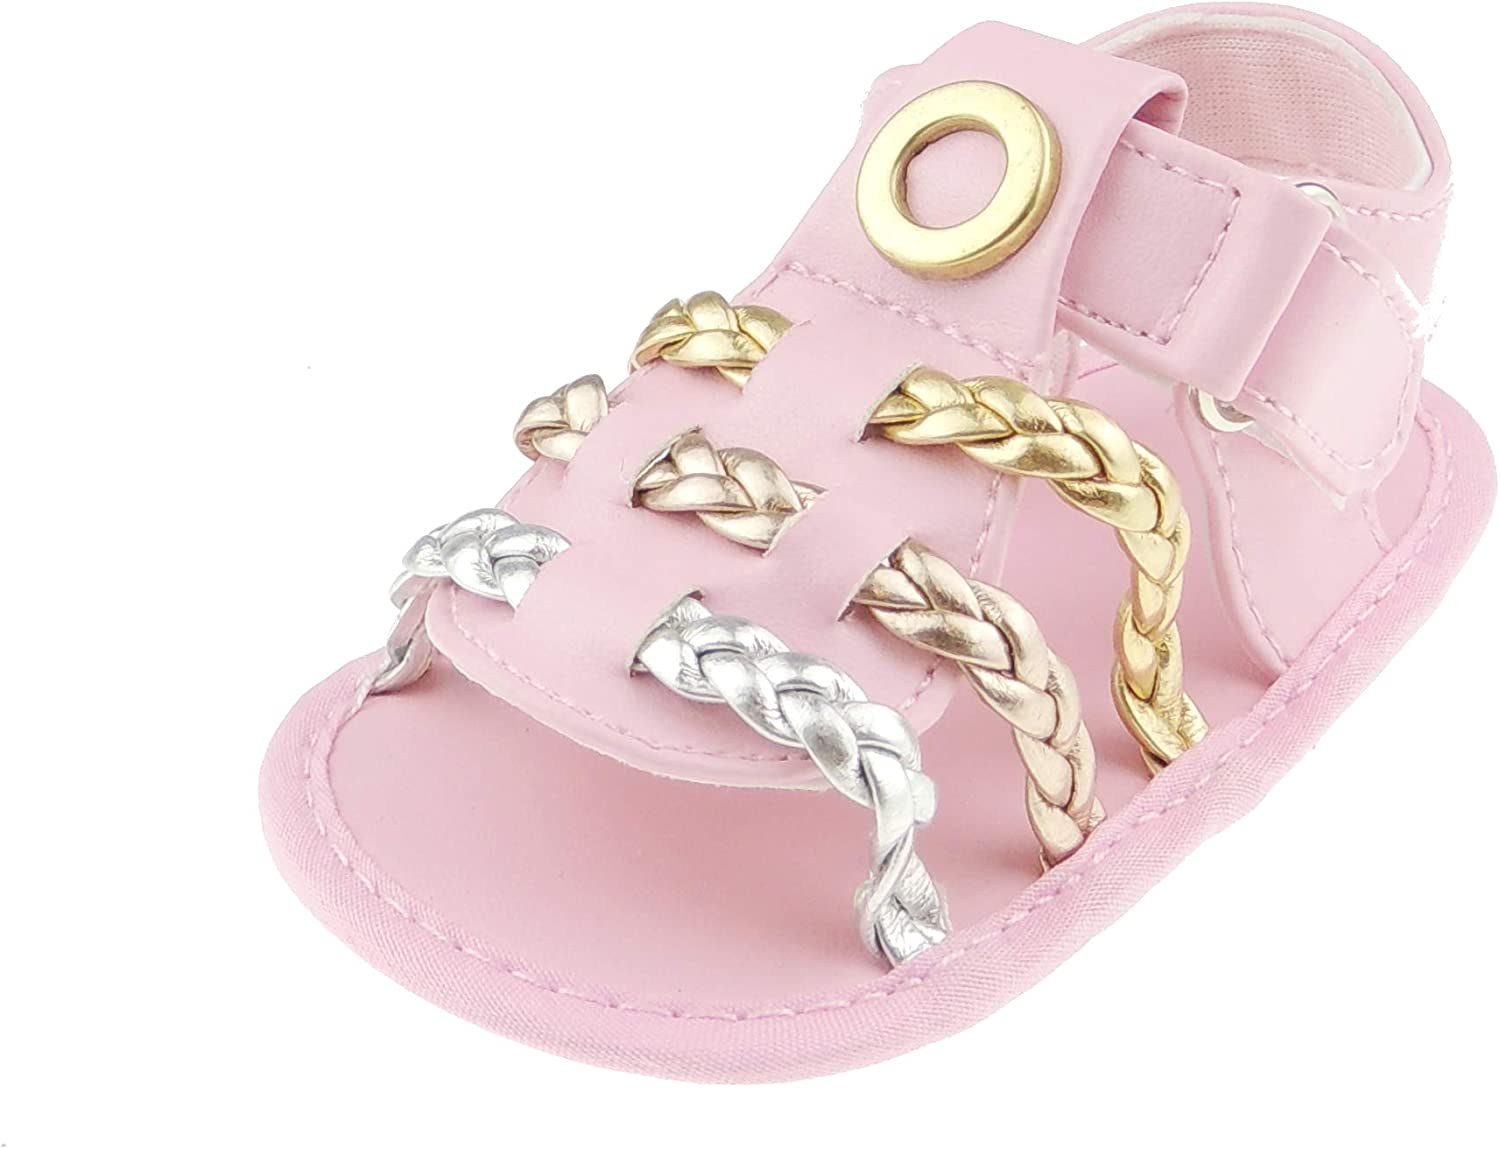 Gold, 11 0-3 Months Glamour Girlz Baby Girls Rope Leather Look Summer Beach Holiday Strappy Sandals